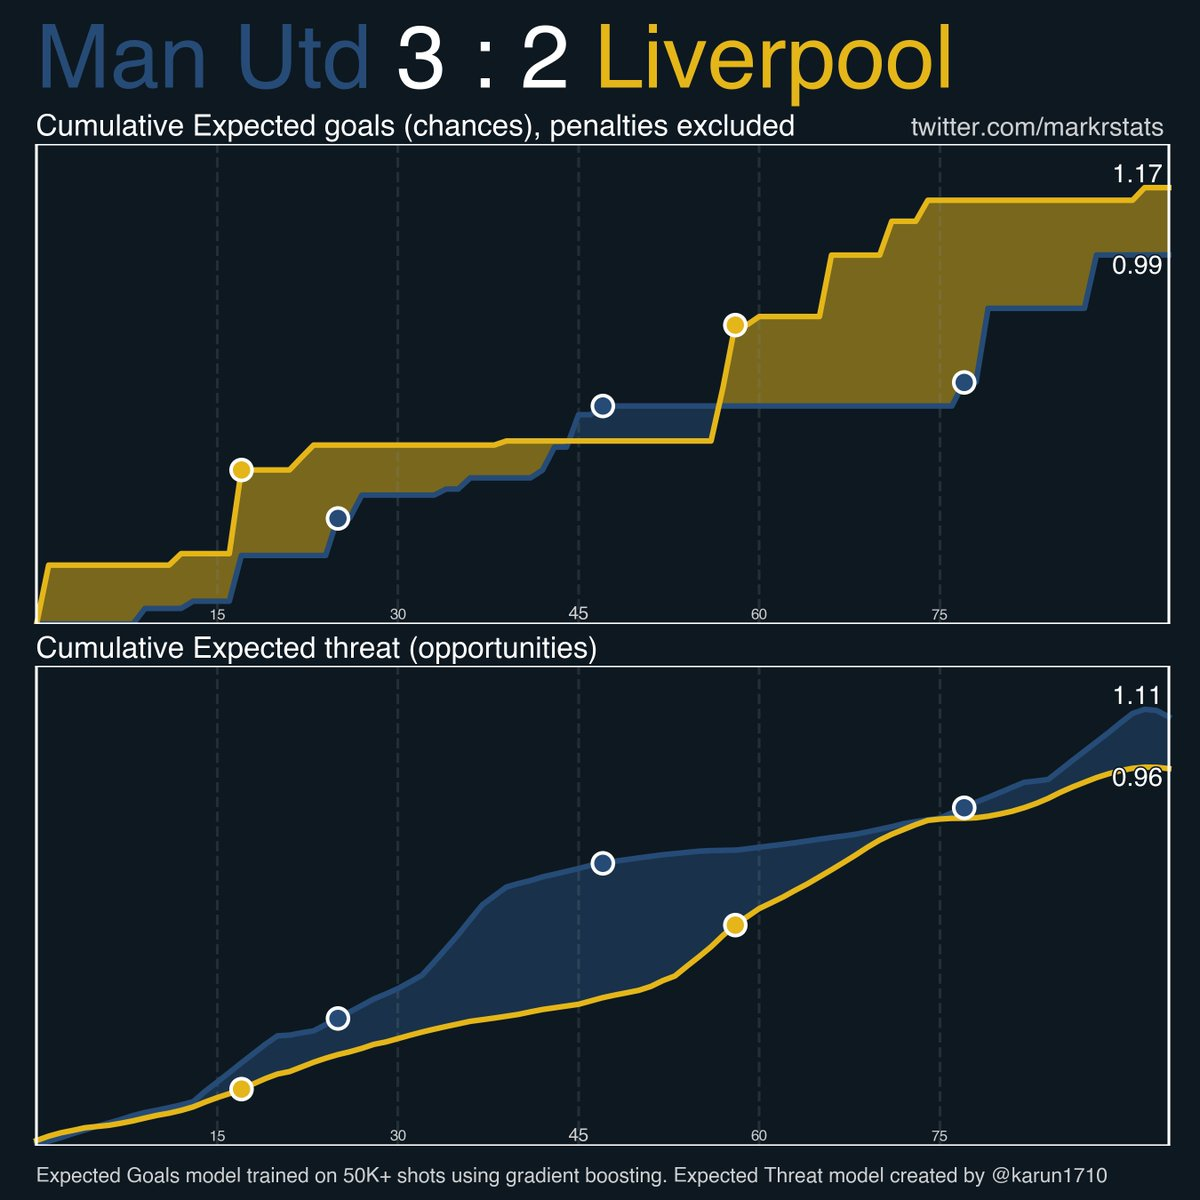 #ManUtd - #Liverpool NPxG: 0.99 - 1.17 xThreat: 1.12 - 0.96  Liverpool had some chances to score third right before Bruno's free-kick   #MUNLIV